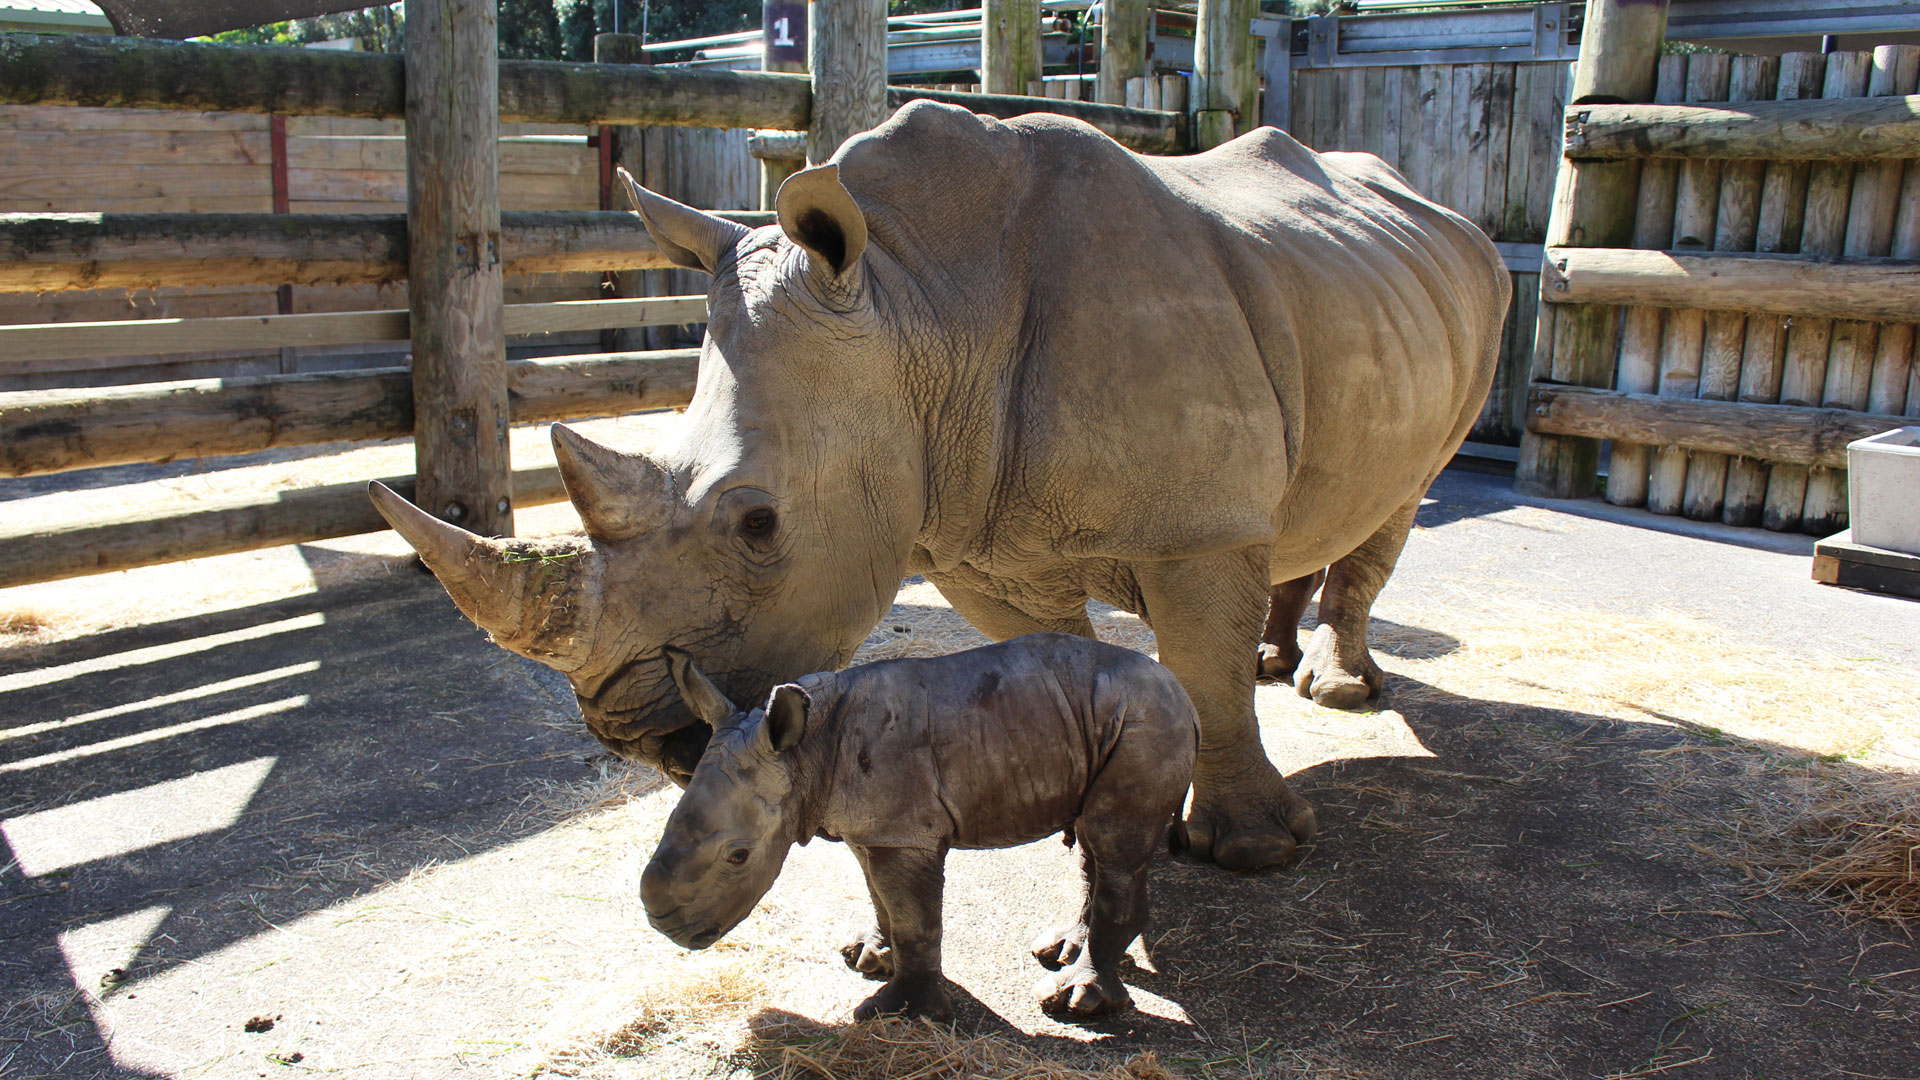 https://rfacdn.nz/zoo/assets/media/rhino-calf-gallery-1.jpg